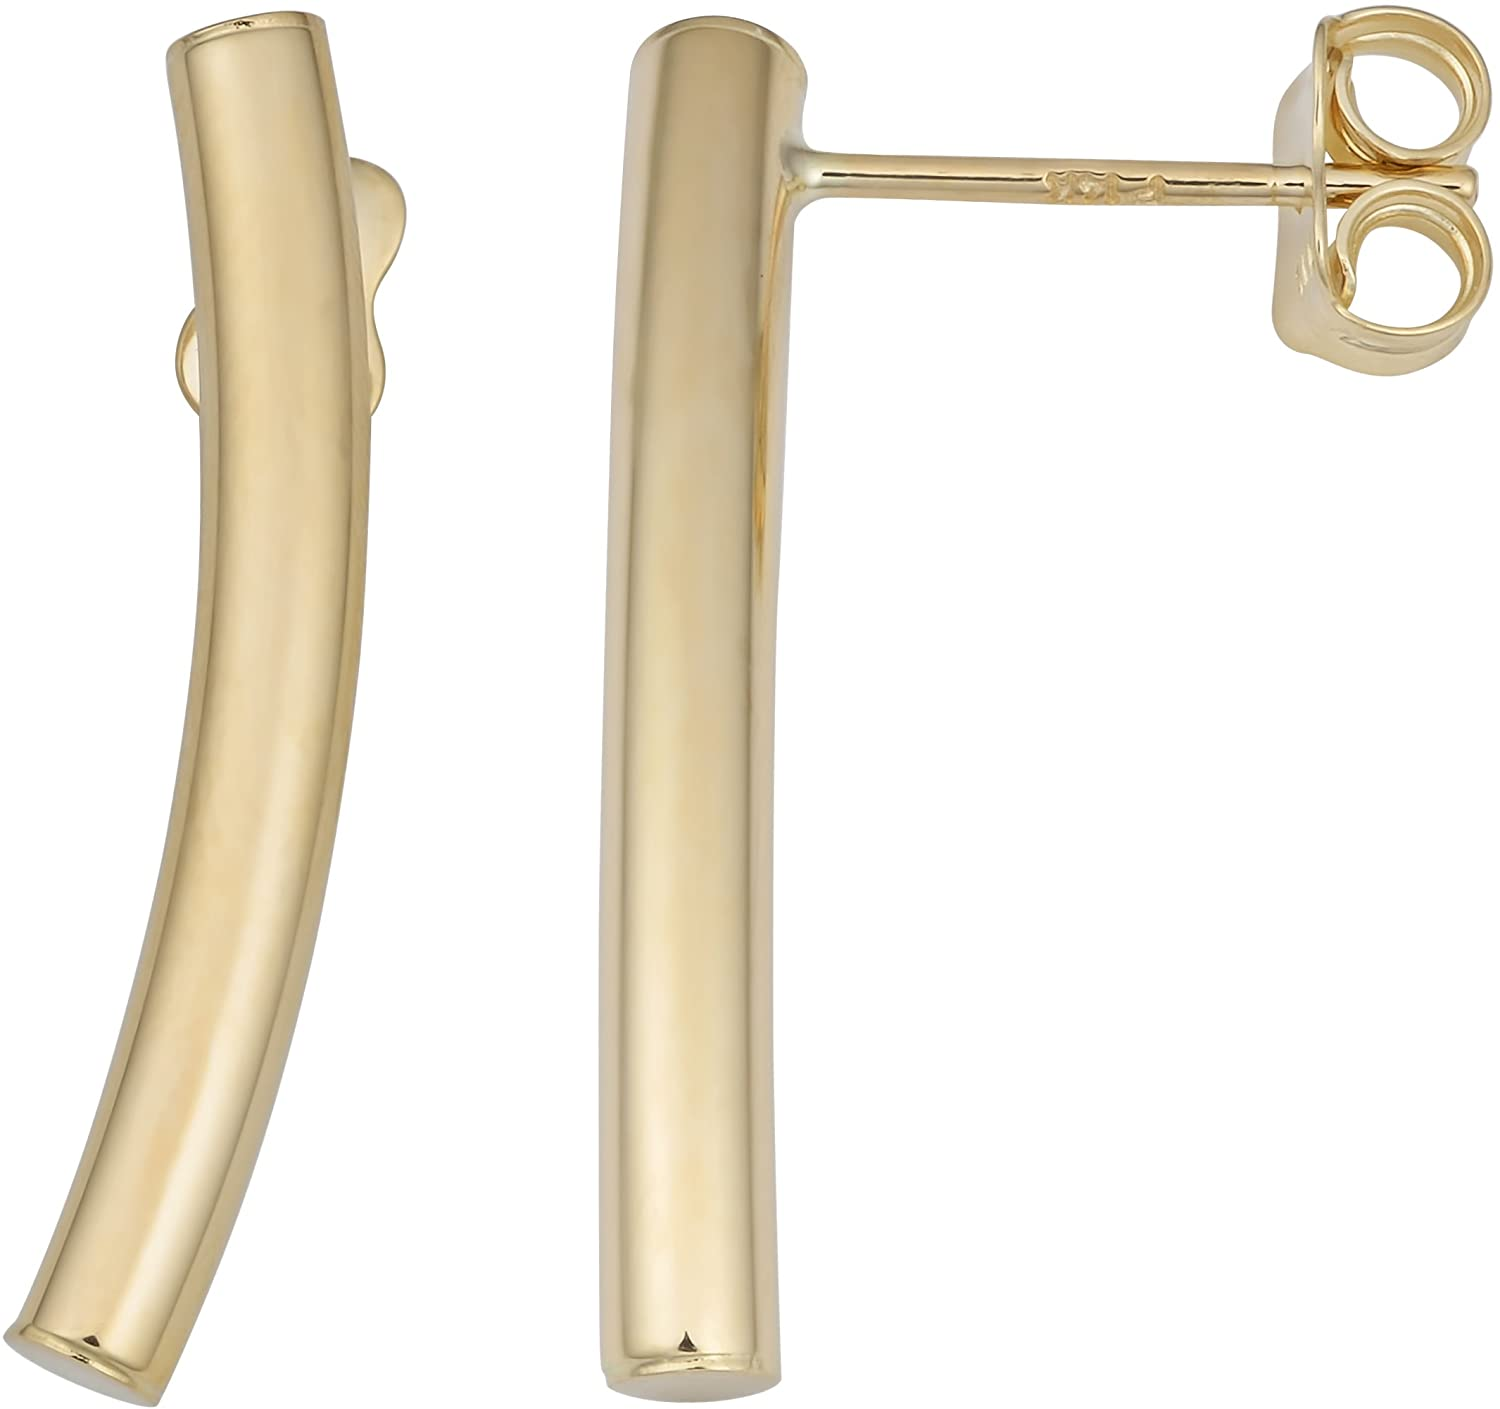 Kooljewelry 14k Yellow Gold Curved Bar Stud Earrings, 1 inch